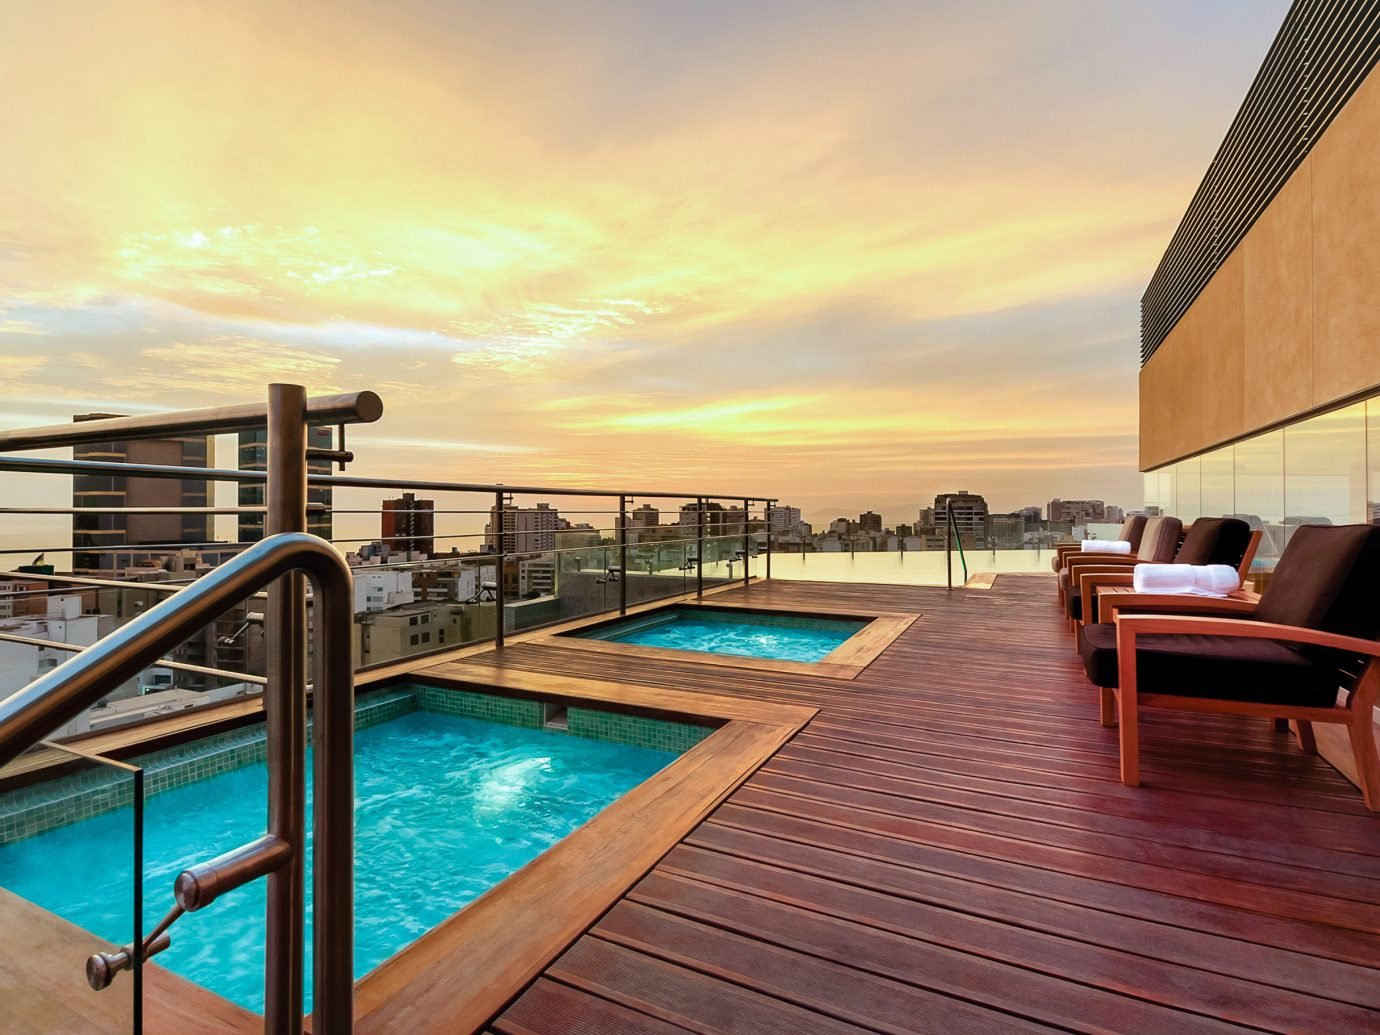 Boutique Hotels Hotels sky ground chair property outdoor swimming pool building real estate reflection Architecture home condominium water apartment estate leisure Resort wooden evening penthouse apartment vacation hotel roof Balcony amenity Pool Sea house daylighting Villa Deck